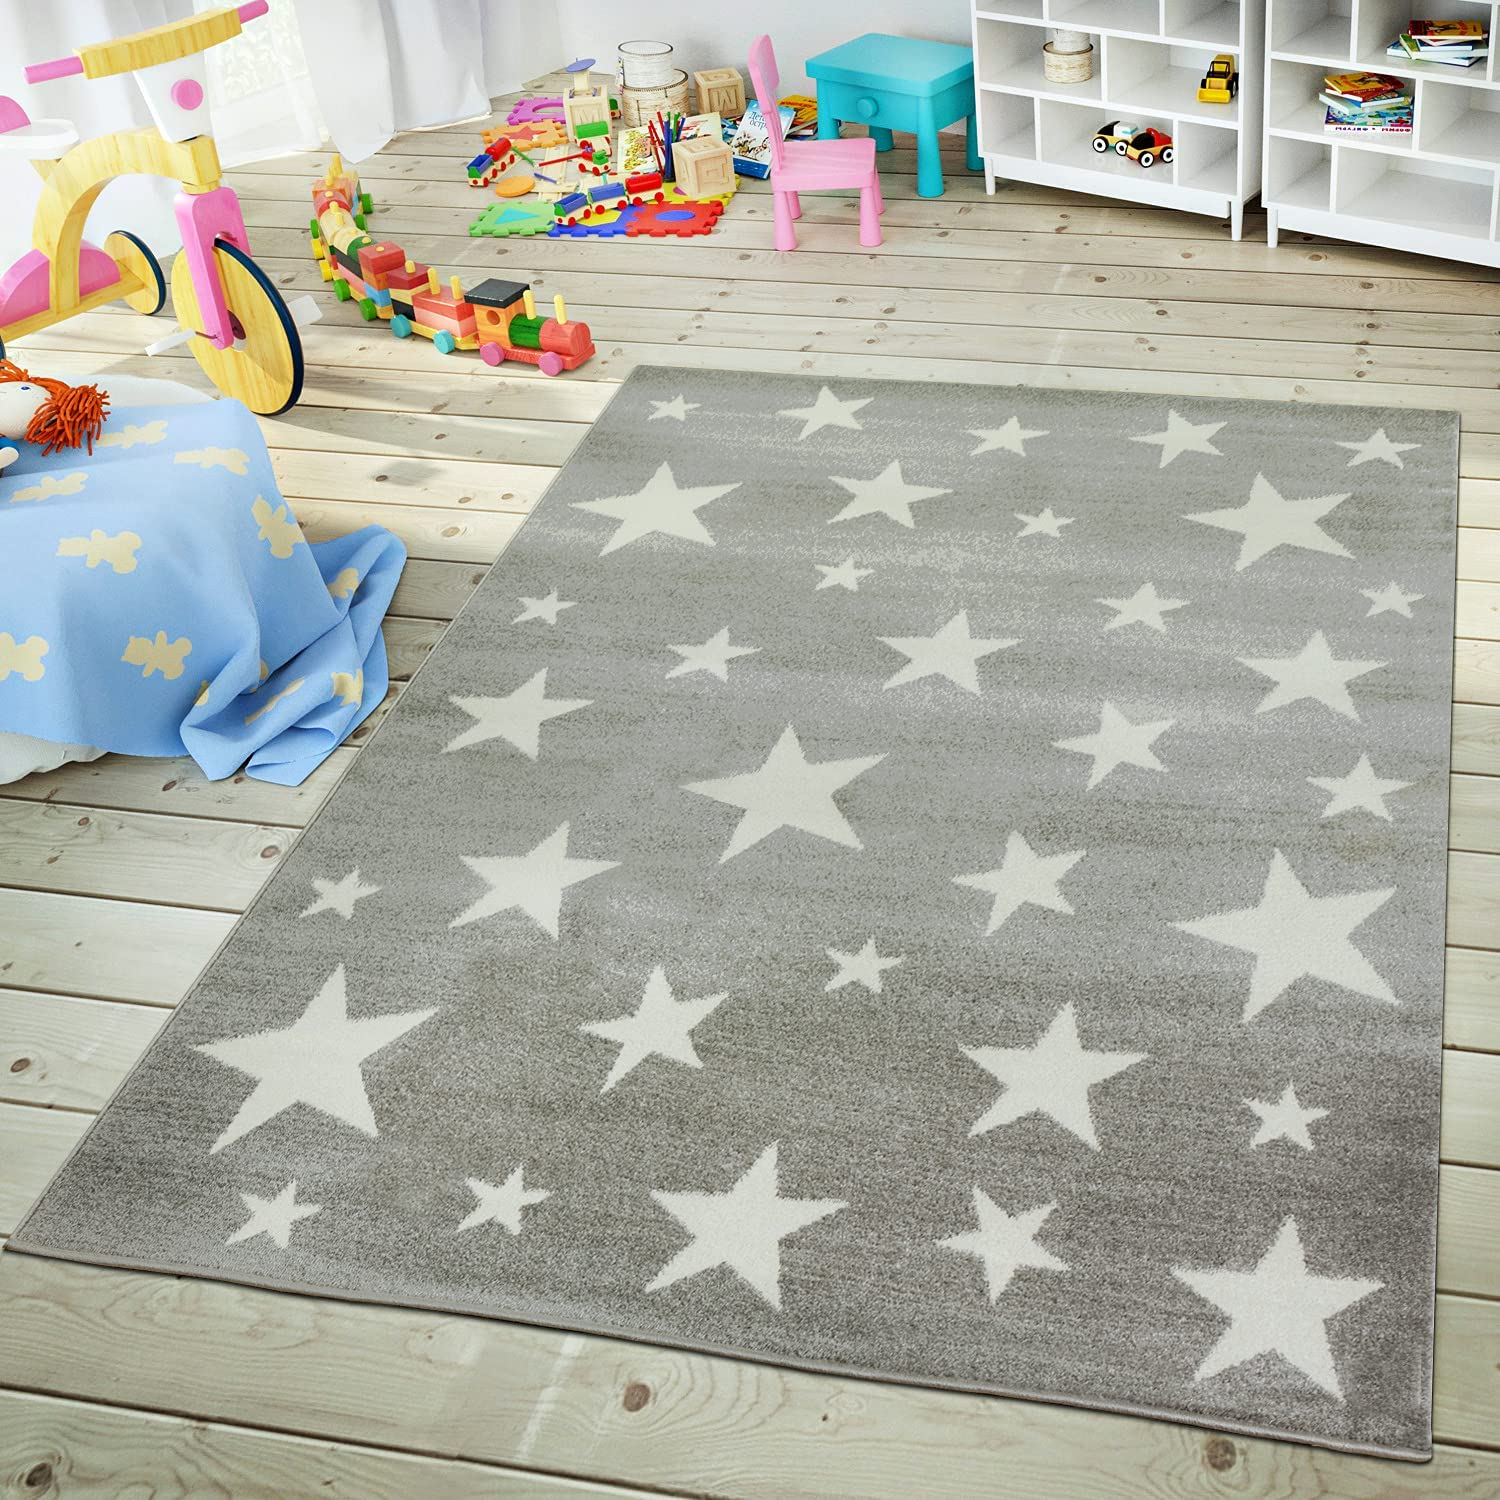 Kids Rug with Star for Children's Room Design Max 53% OFF Starry Inexpensive Size:6 Sky